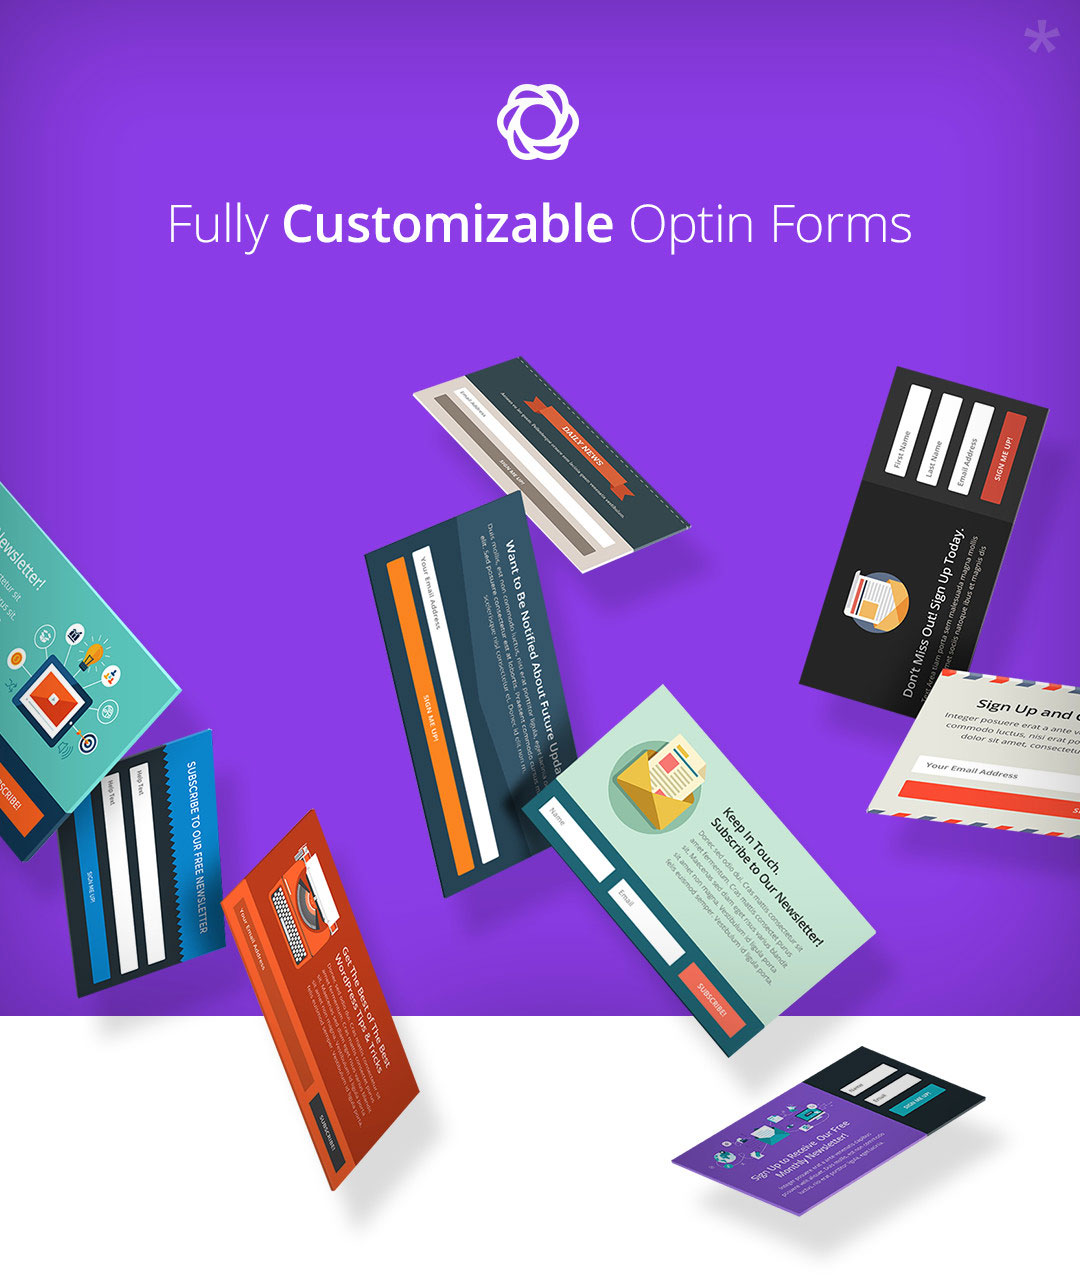 email form design templates